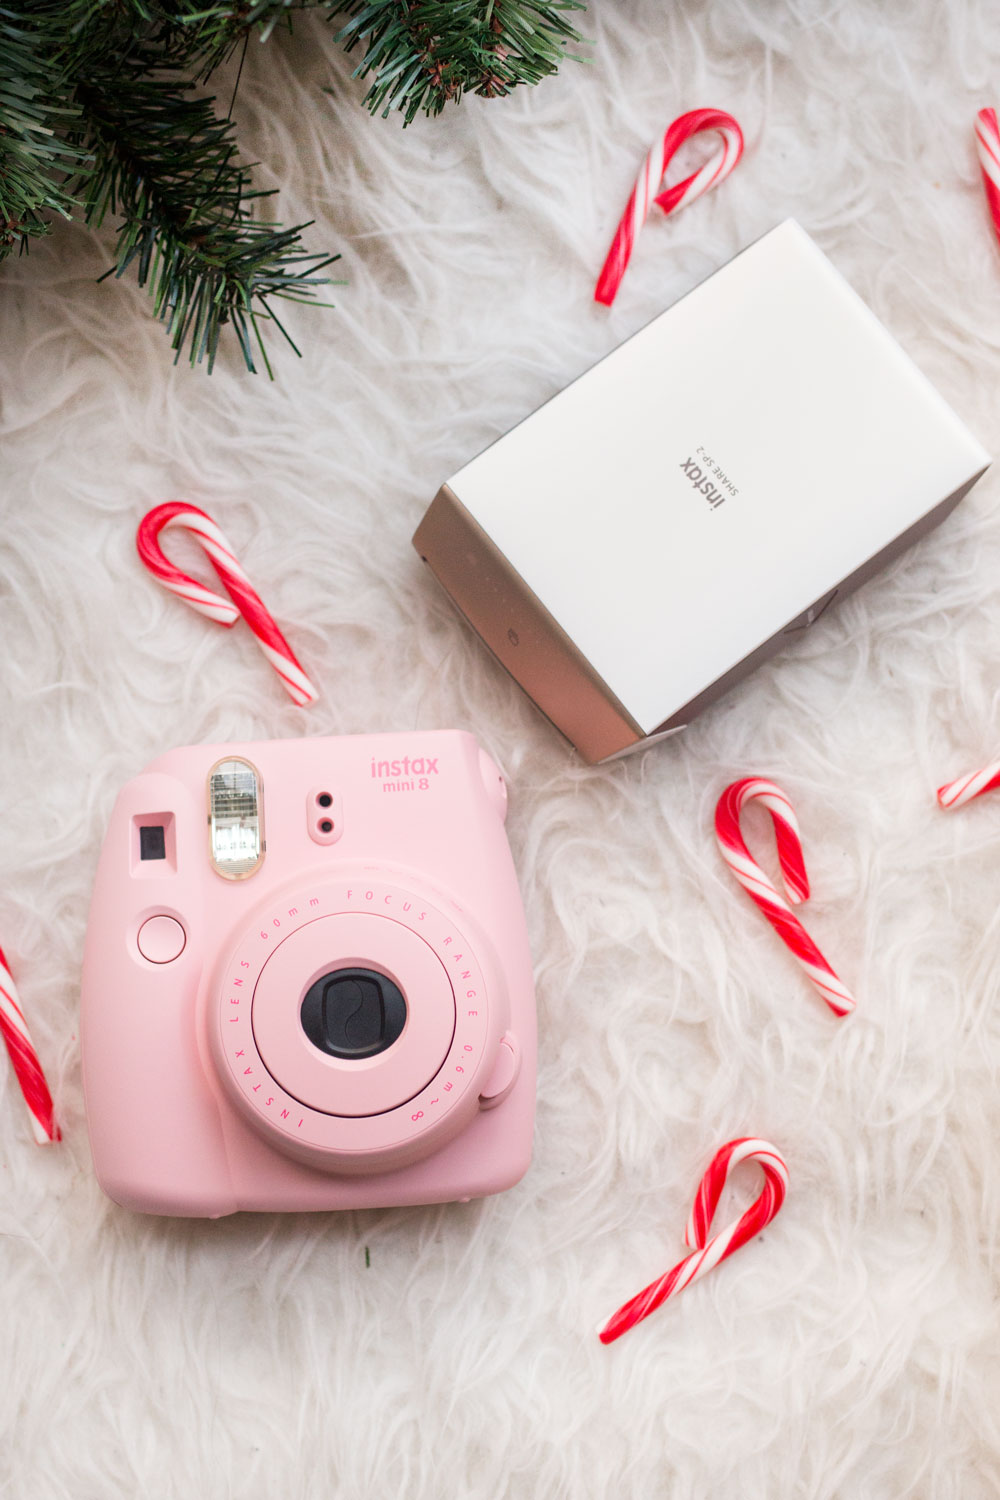 Fujifilm SP-2 Printer + Instax Mini 8 Camera // Last Minute Christmas Shopping Gift Ideas // Hello Rigby Seattle Lifestyle Blog